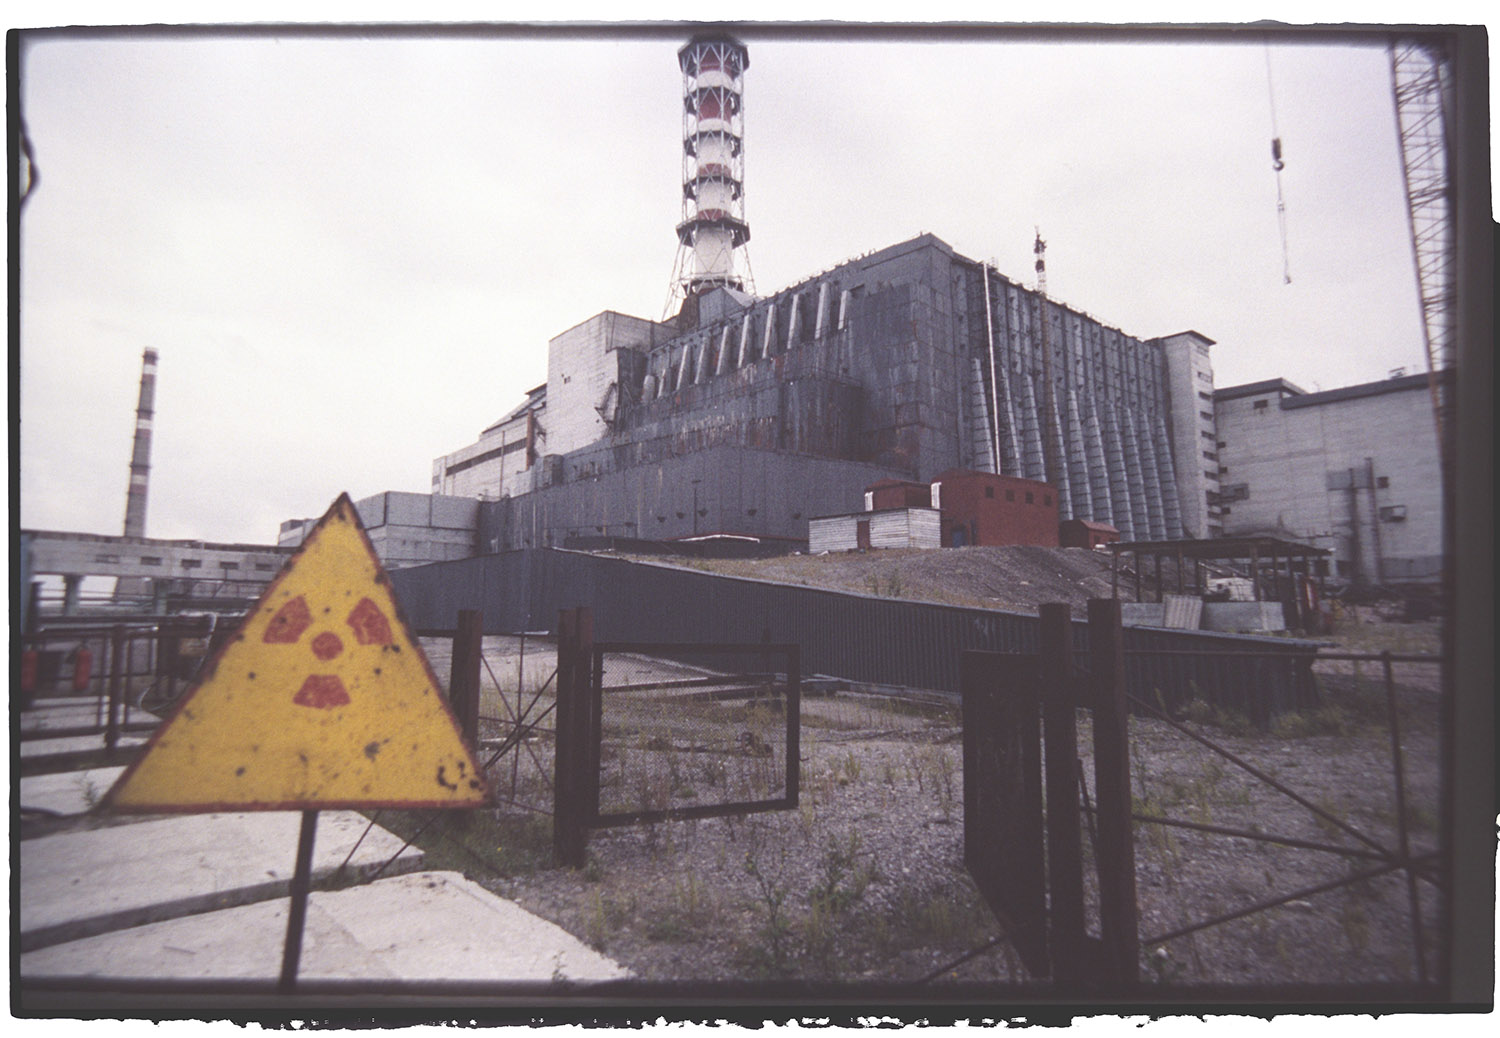 Exterior view of the sarcophagus built on the reactor at Chernobyl nuclear plant. (Credit: Igor Kostin/Sygma/Getty Images)